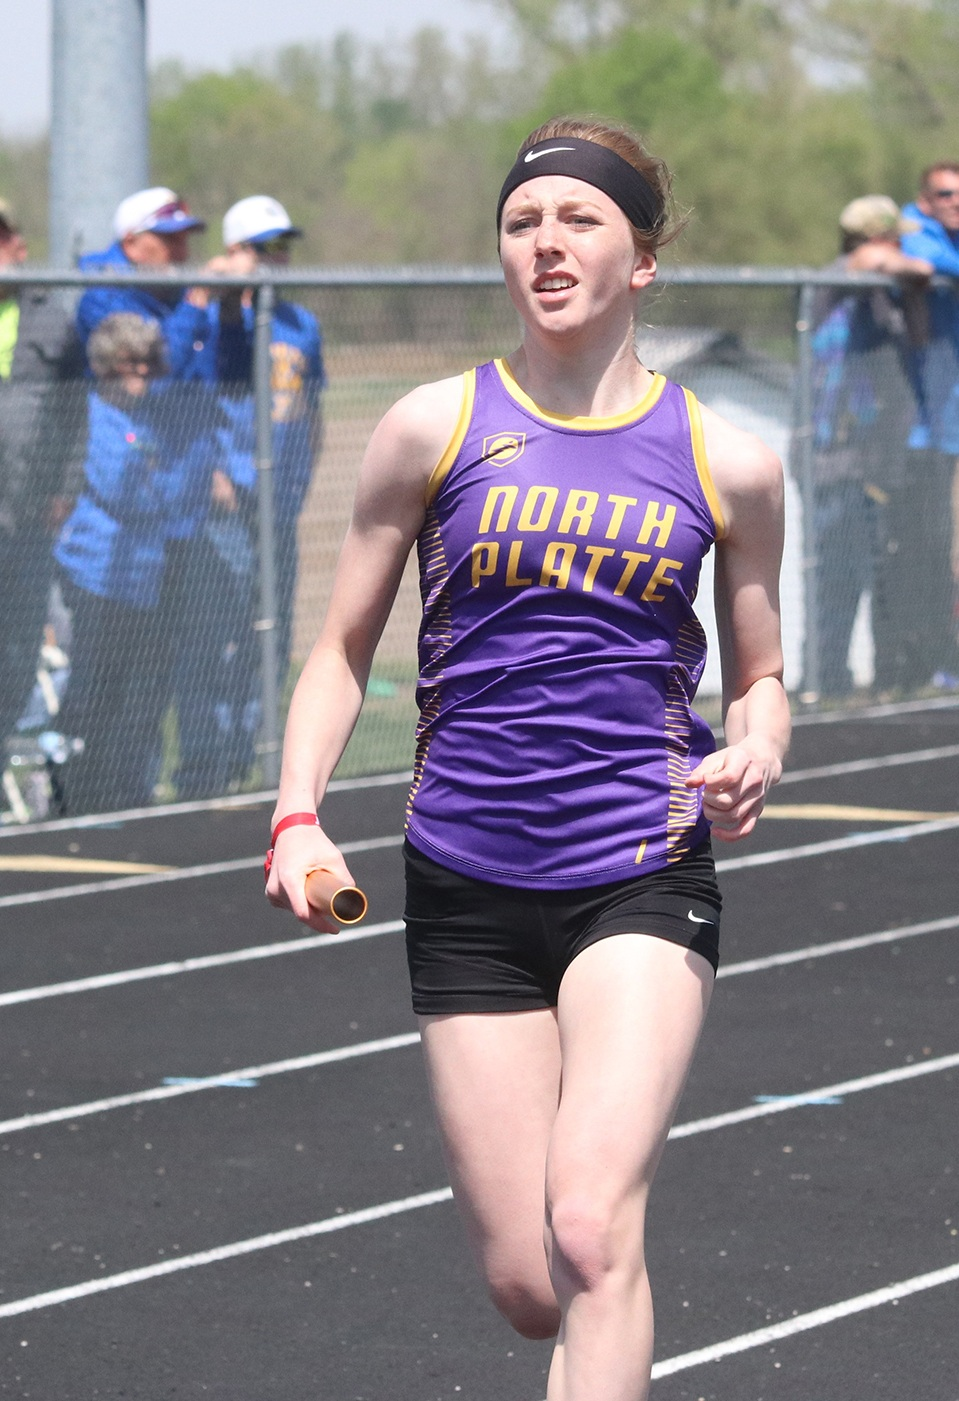 CLINTON COUNTY LEADER North Platte's Haley Sampson was part of a 4x200-meter relay team that won a KCI Conference championship on Saturday, April 27.